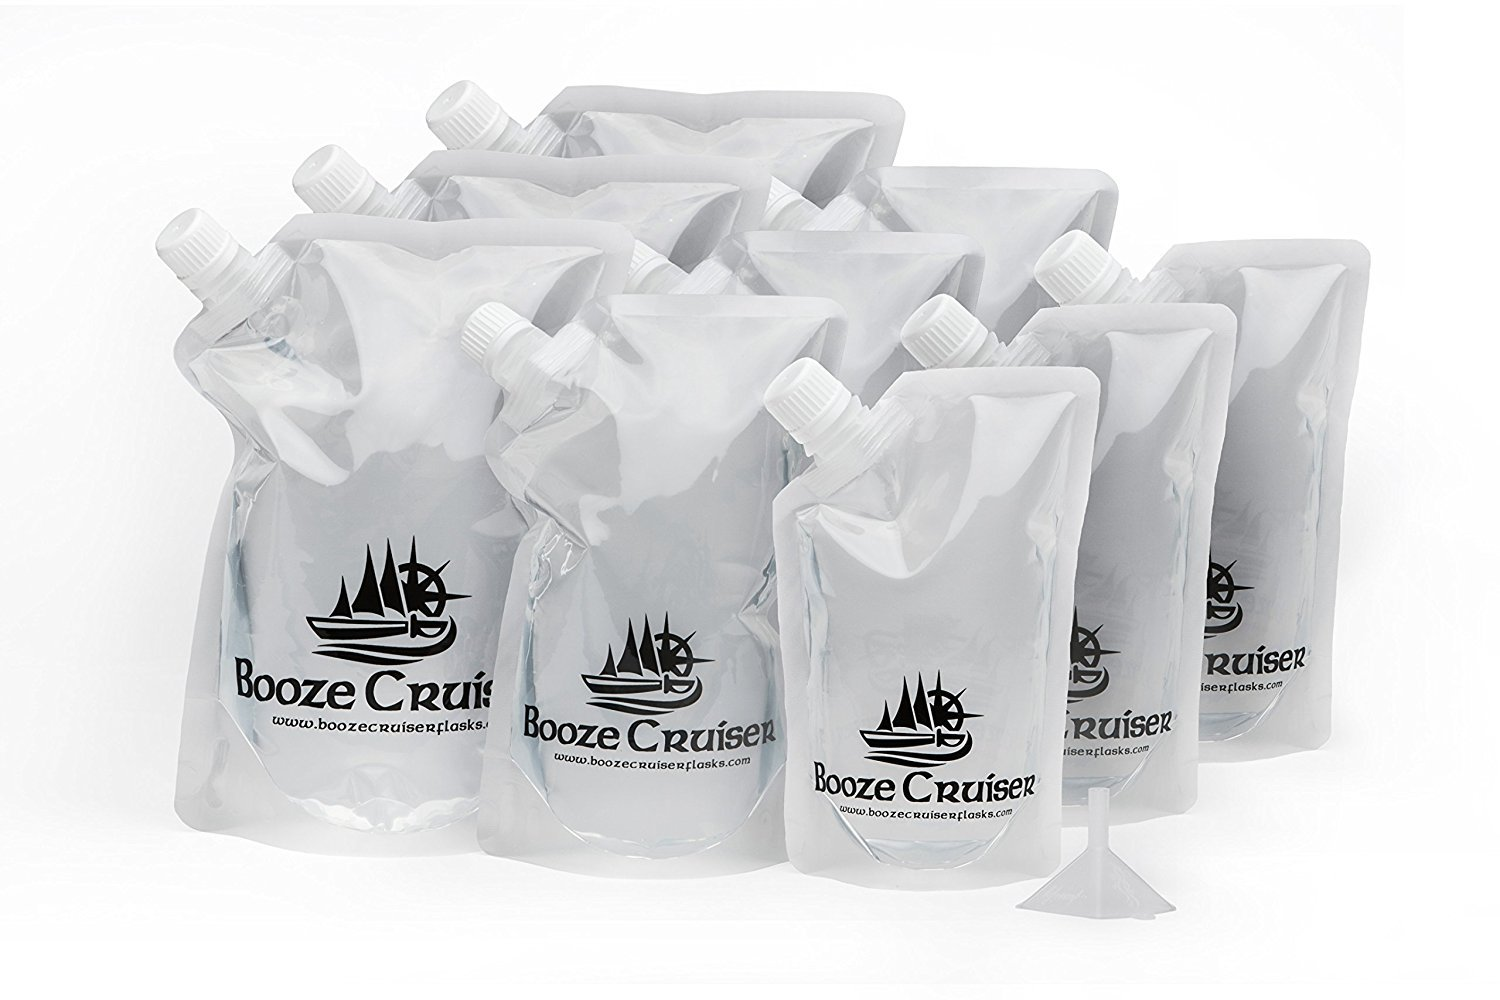 Booze Cruiser Flask Set Perfect For Cruises and Travel or Anywhere You Want a Rum Runner Cocktail Plastic Flask Kit (3x32oz, 3x16oz, 3x8oz + Funnel)